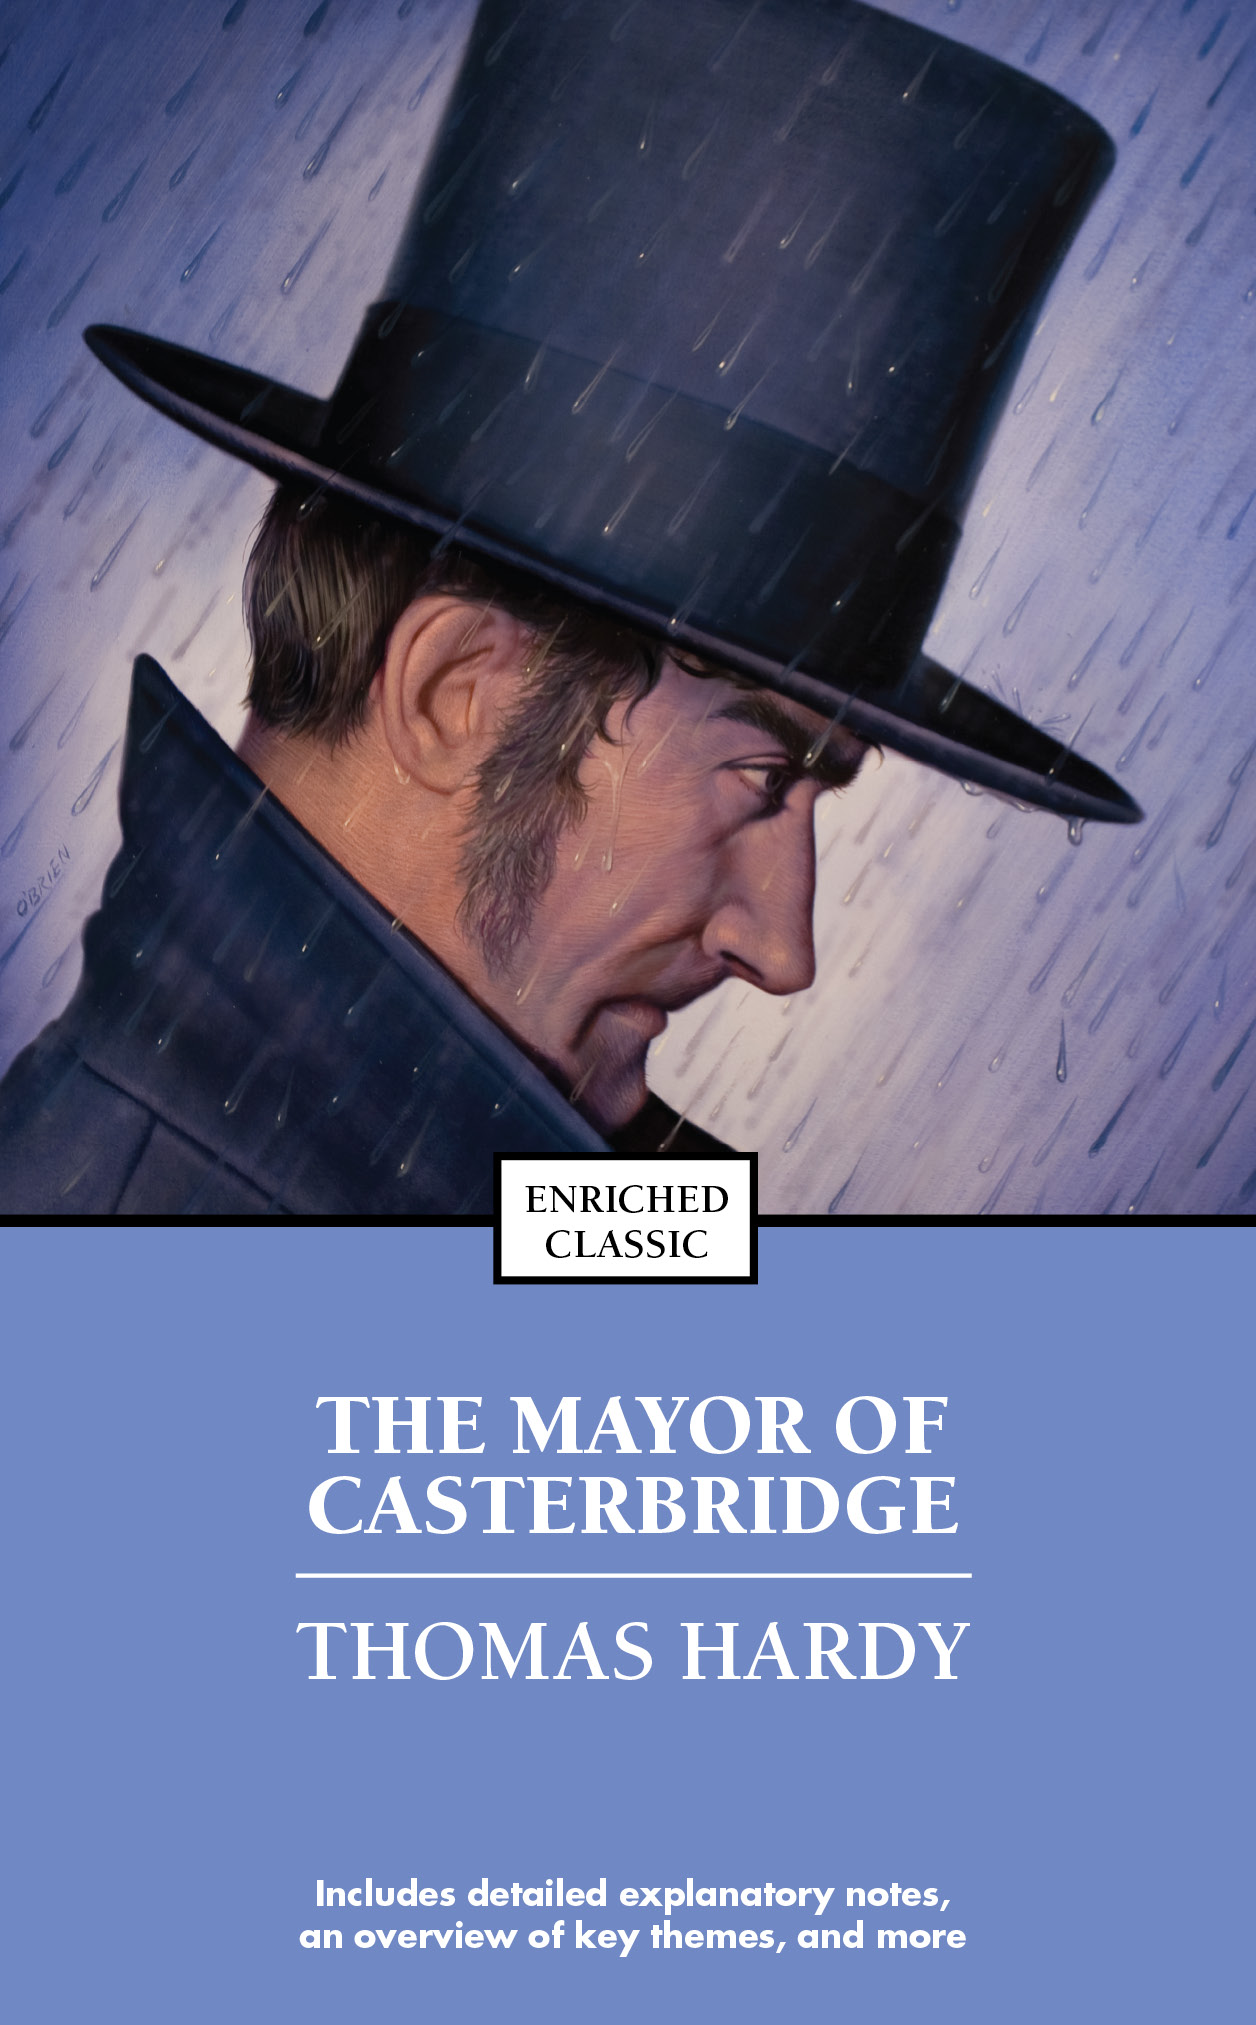 an analysis of michael henchard in the mayor of casterbridge Michael henchard, fictional character, a well-to-do grain merchant with a guilty  secret in his past who is the protagonist of the novel the mayor of casterbridge.